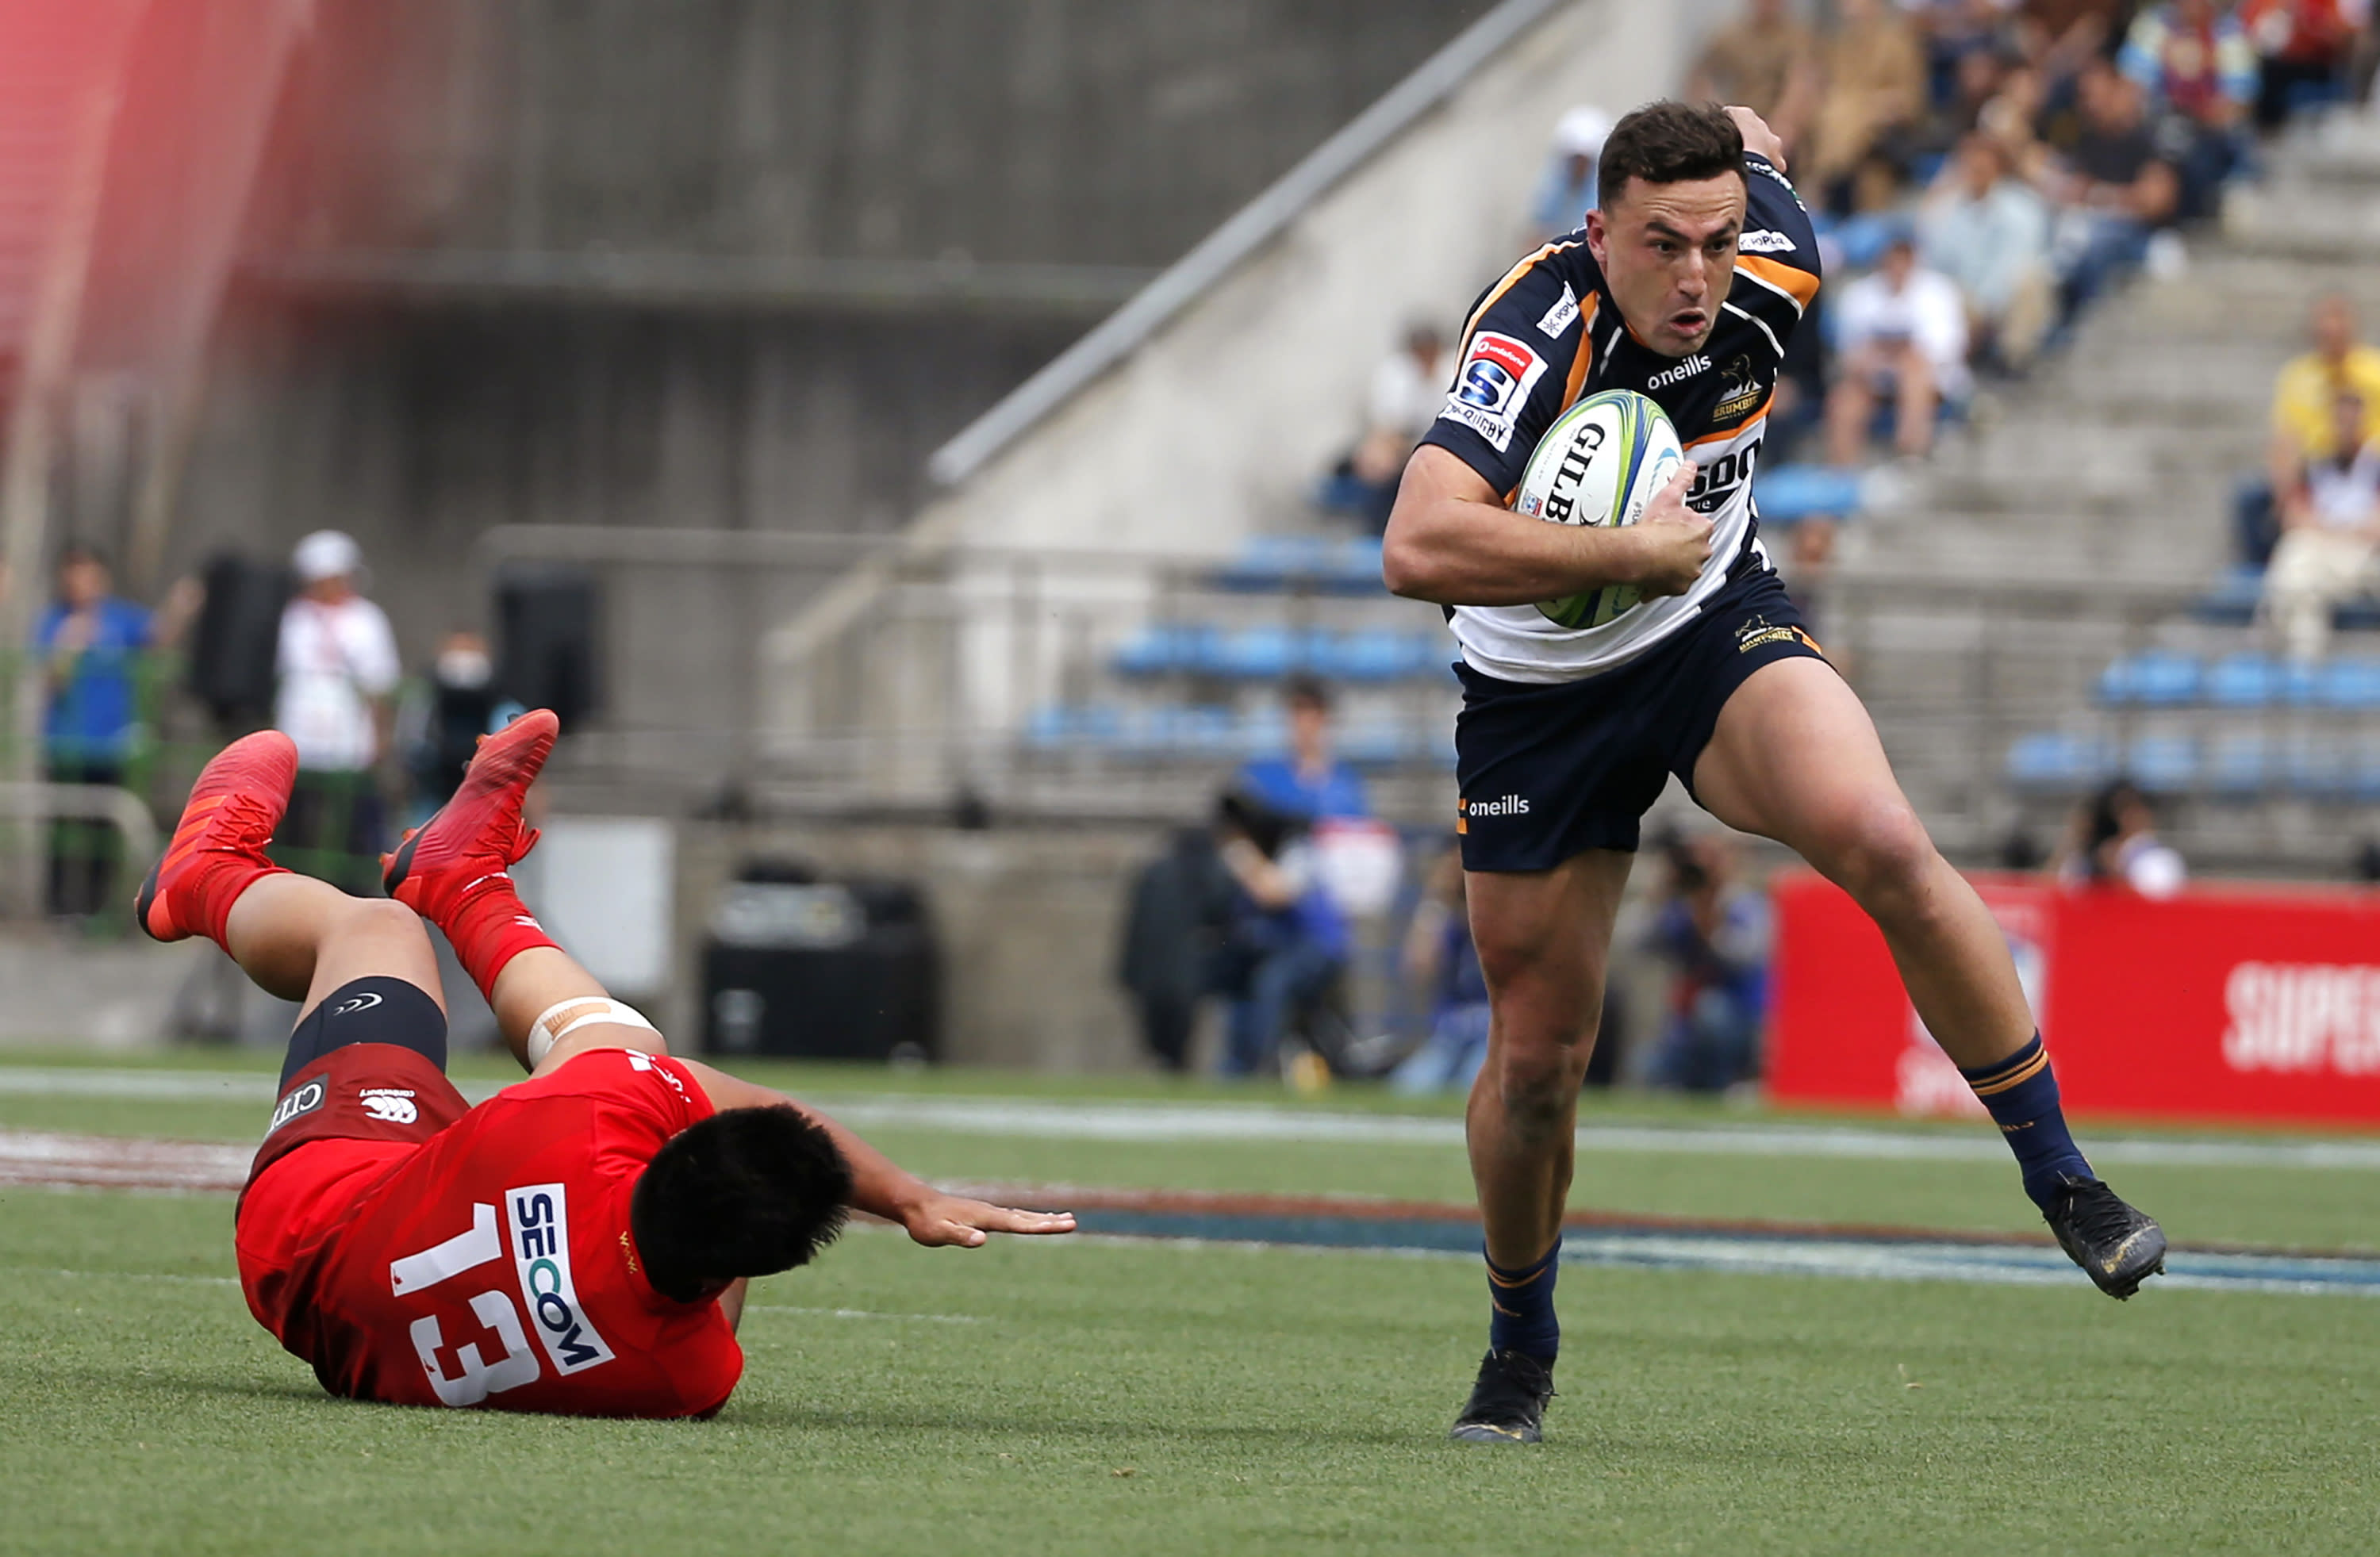 FILE - In this June 1, 2019, file photo, the Brumbies' Tom Banks, right, runs past the Sunwolves' Jason Emery during their Super Rugby game in Tokyo. Banks will start at fullback for Australia in the first Bledisloe Cup test against New Zealand, Sunday, Oct. 11, 2020. (AP Photo/Shuji Kajiyama, File)